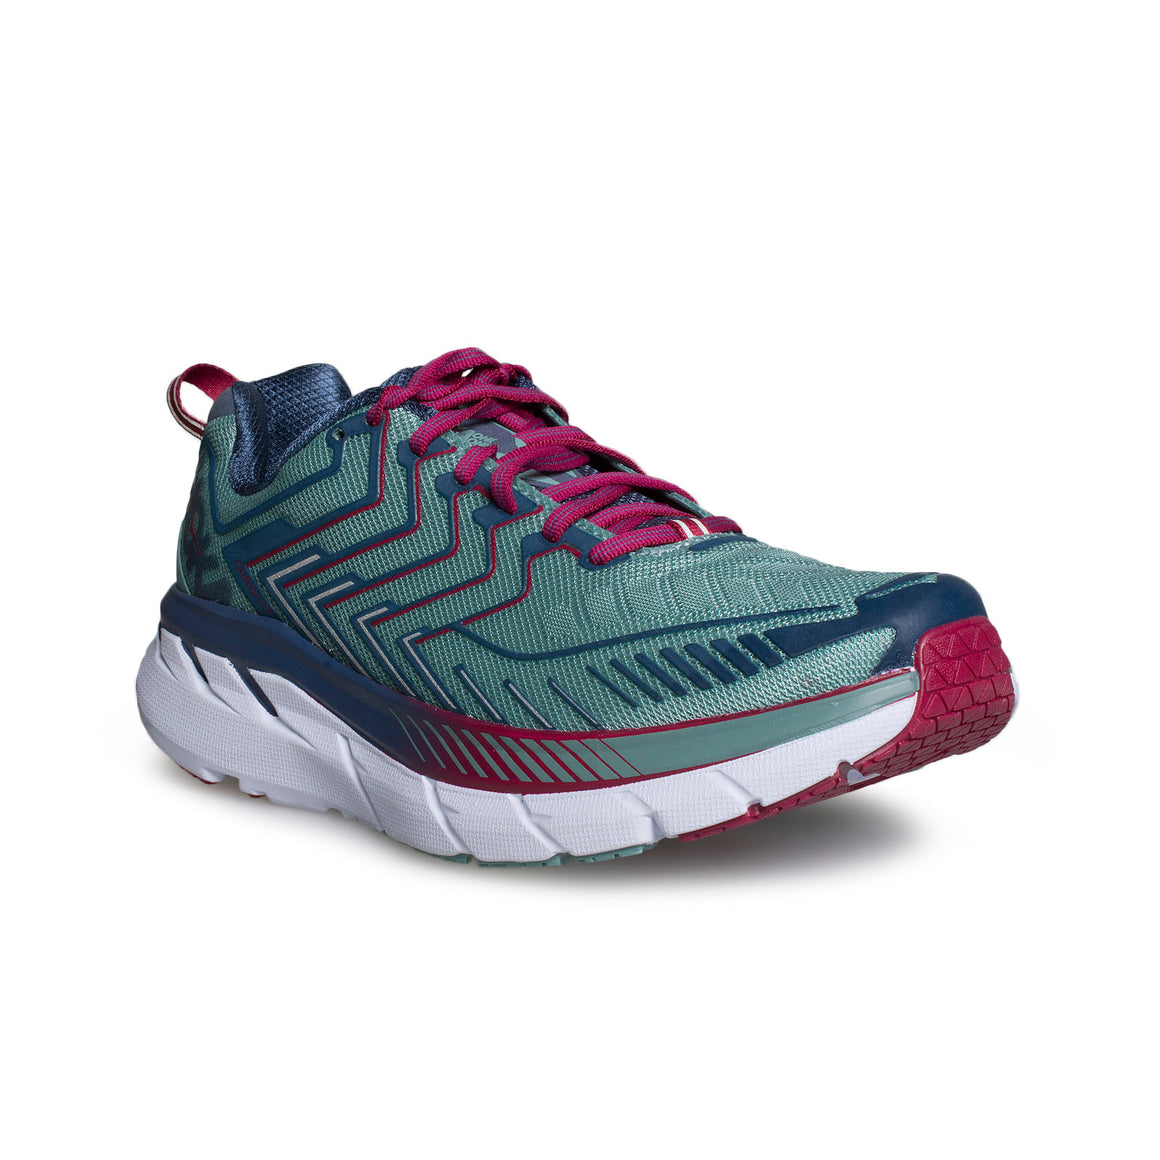 Hoka Clifton 4 Aquifer / Vintage Indigo Running Shoes - Women's